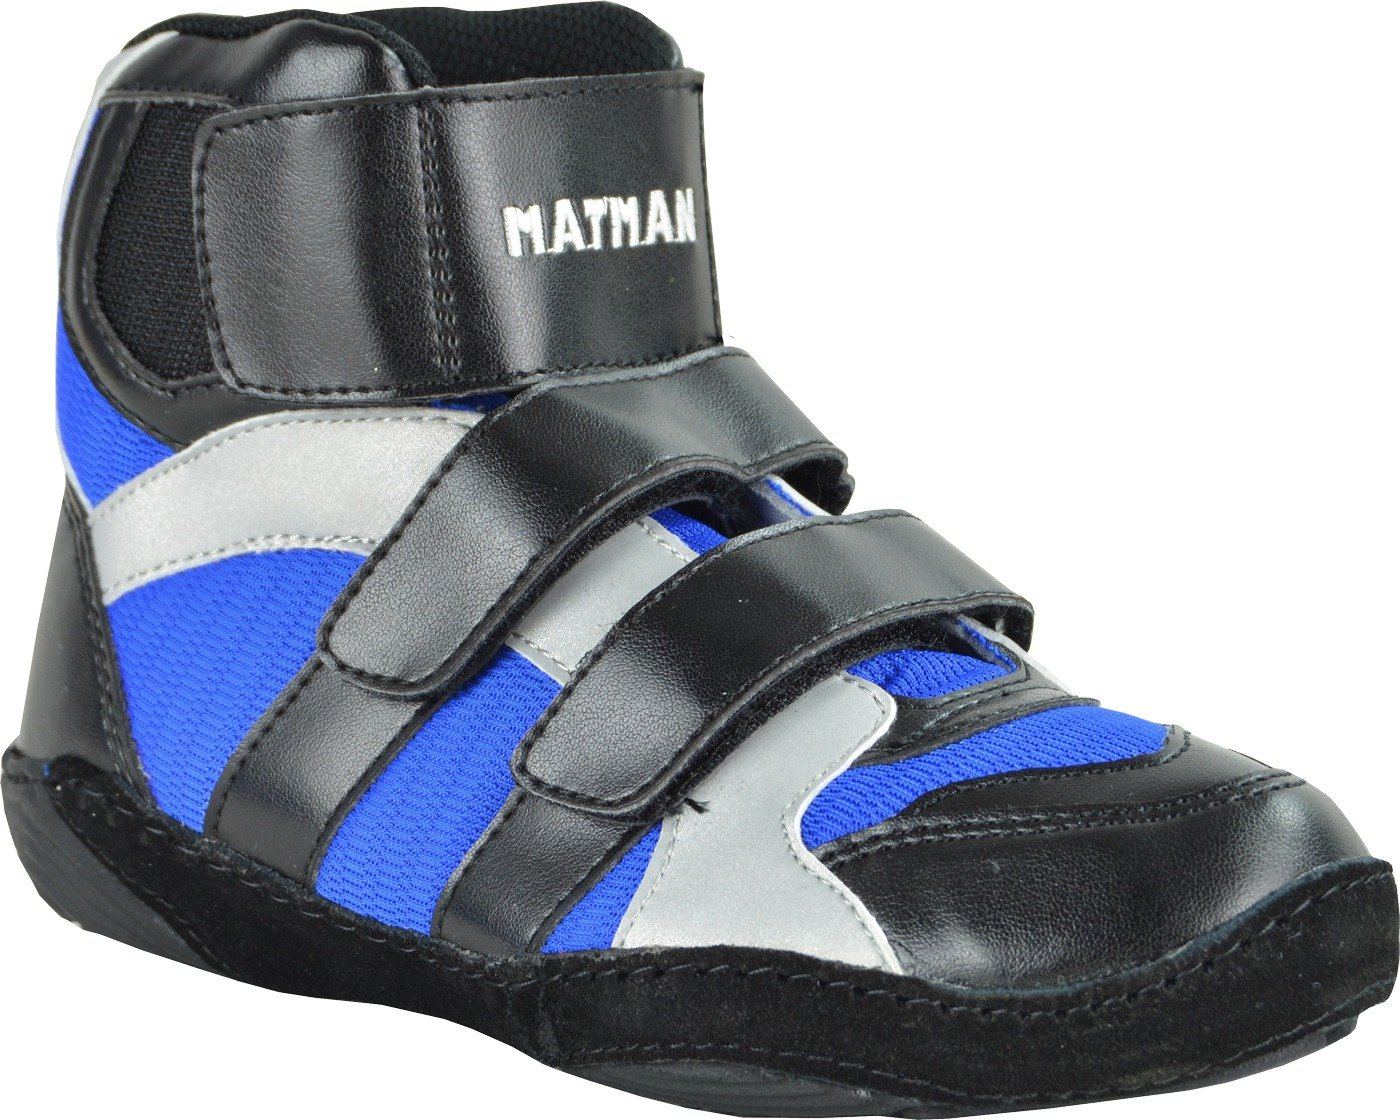 Matman Scrapper Youth Laceless Wrestling Shoes by Matman